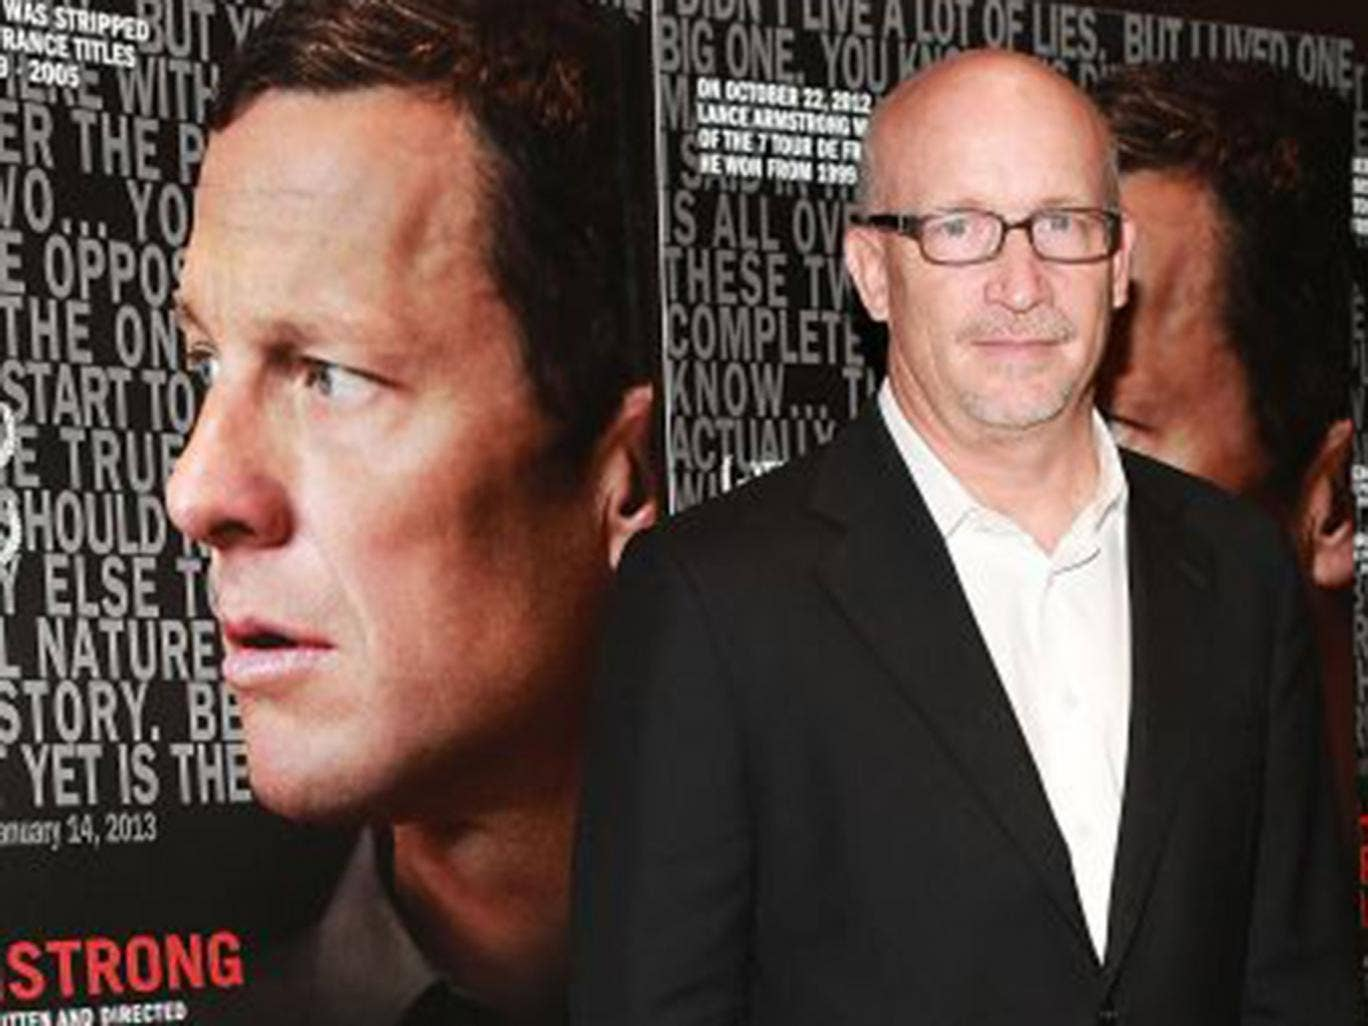 Alex Gibney with posters for 'The Armstrong Lie'